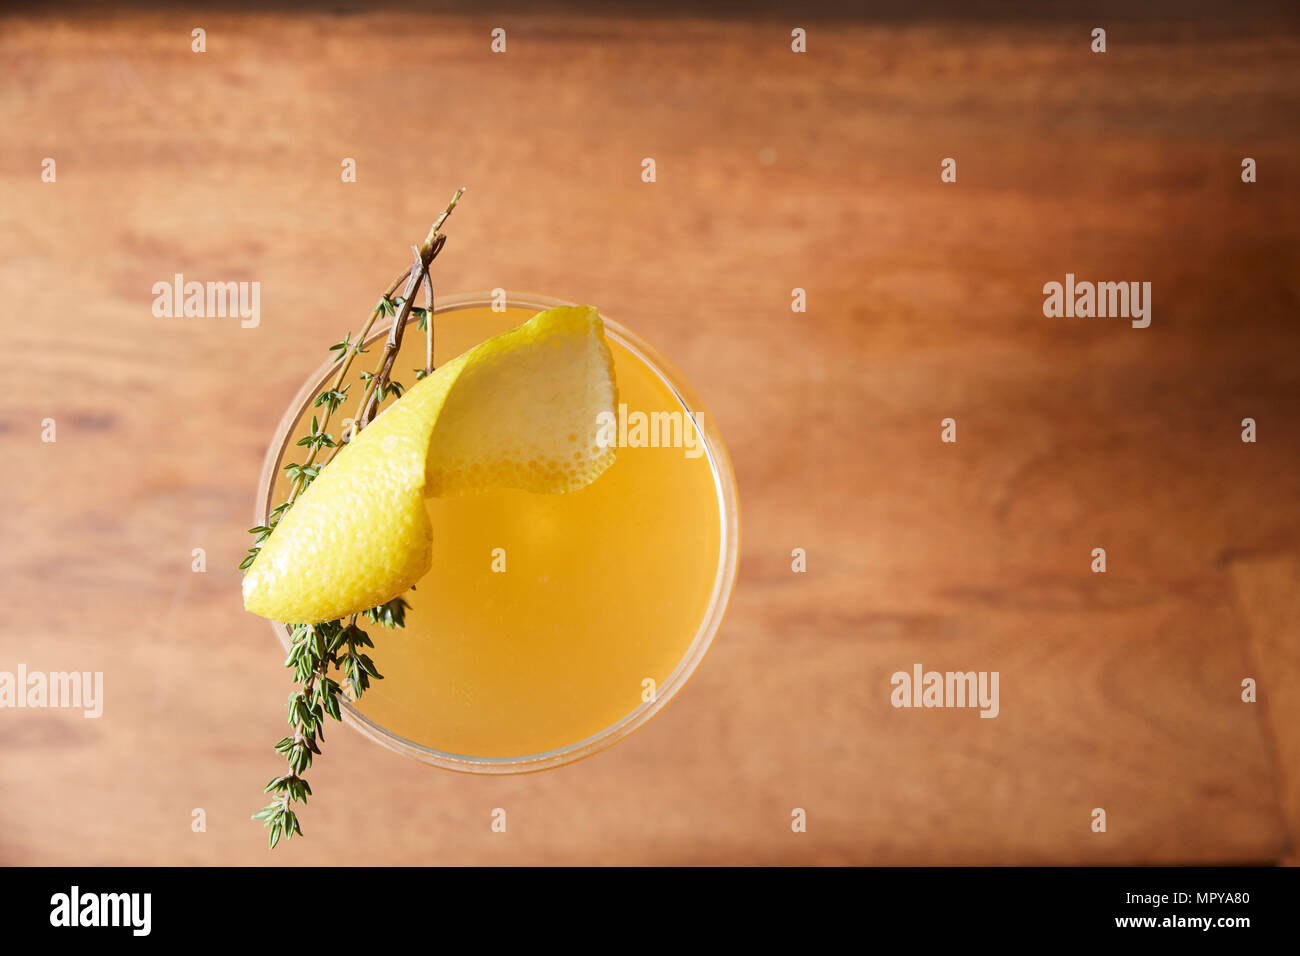 Overhead view of cocktail on wooden table - Stock Image